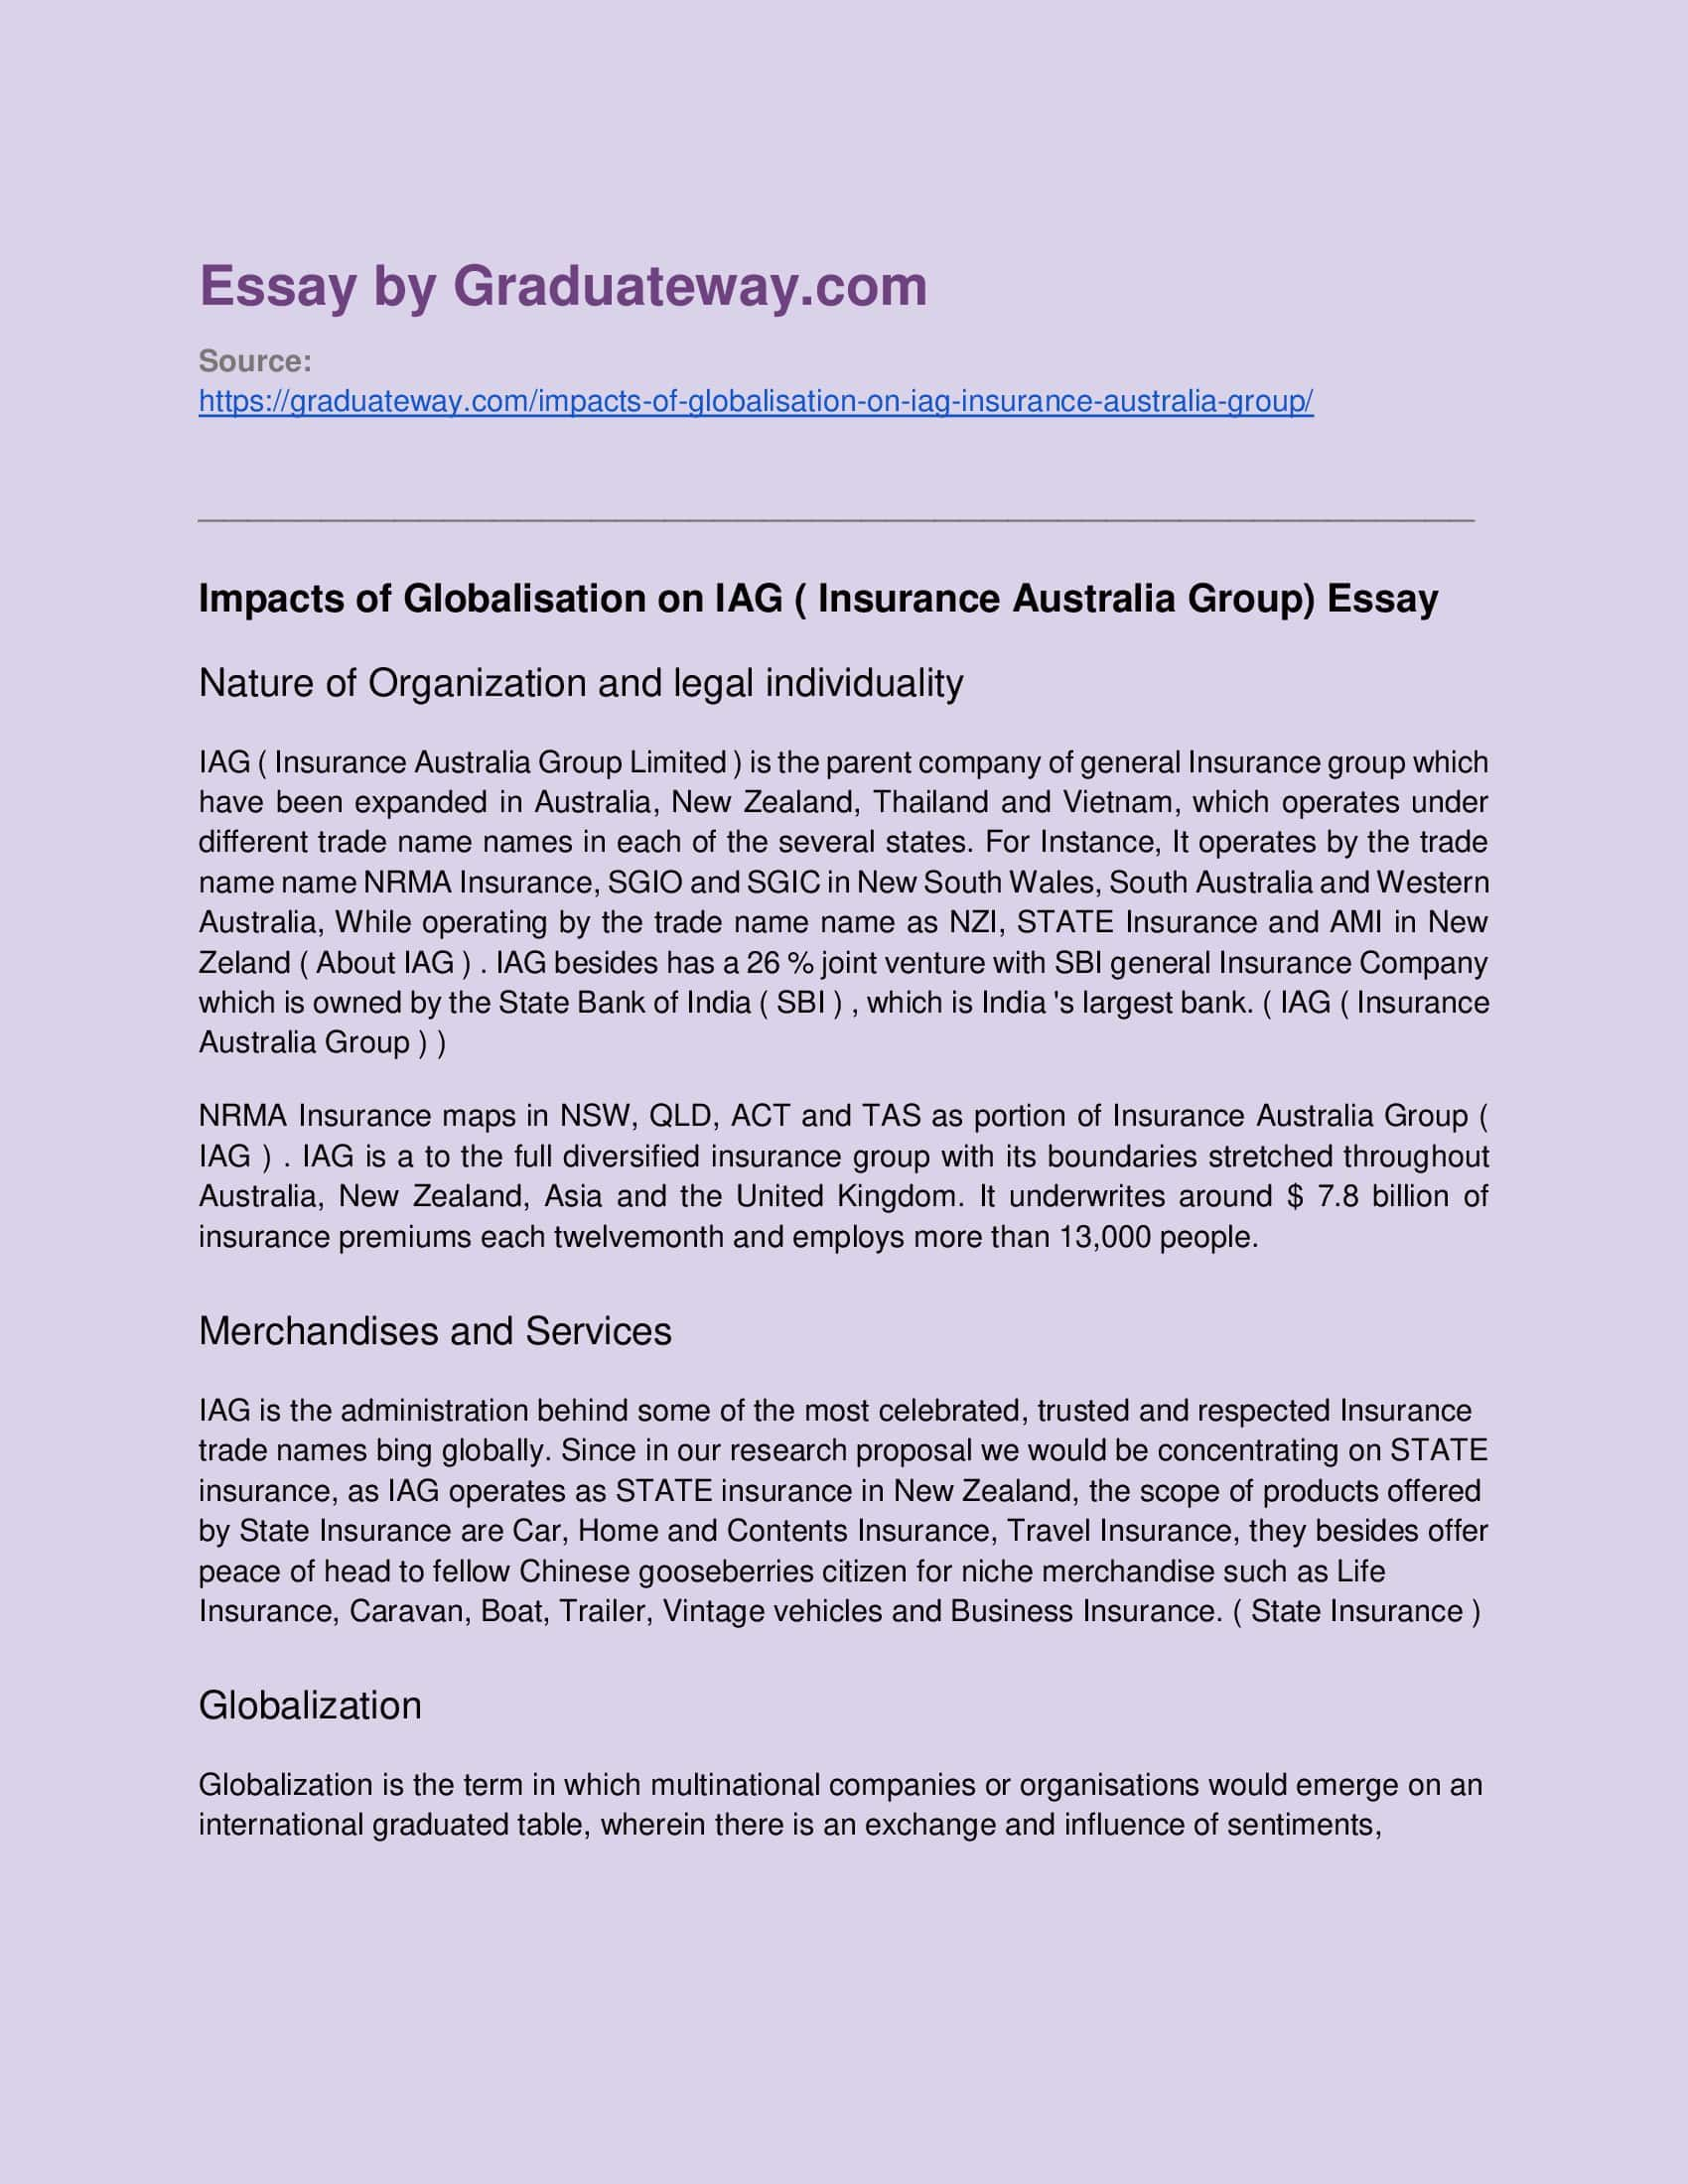 Impacts Of Globalisation On Iag Insurance Australia Group Essay